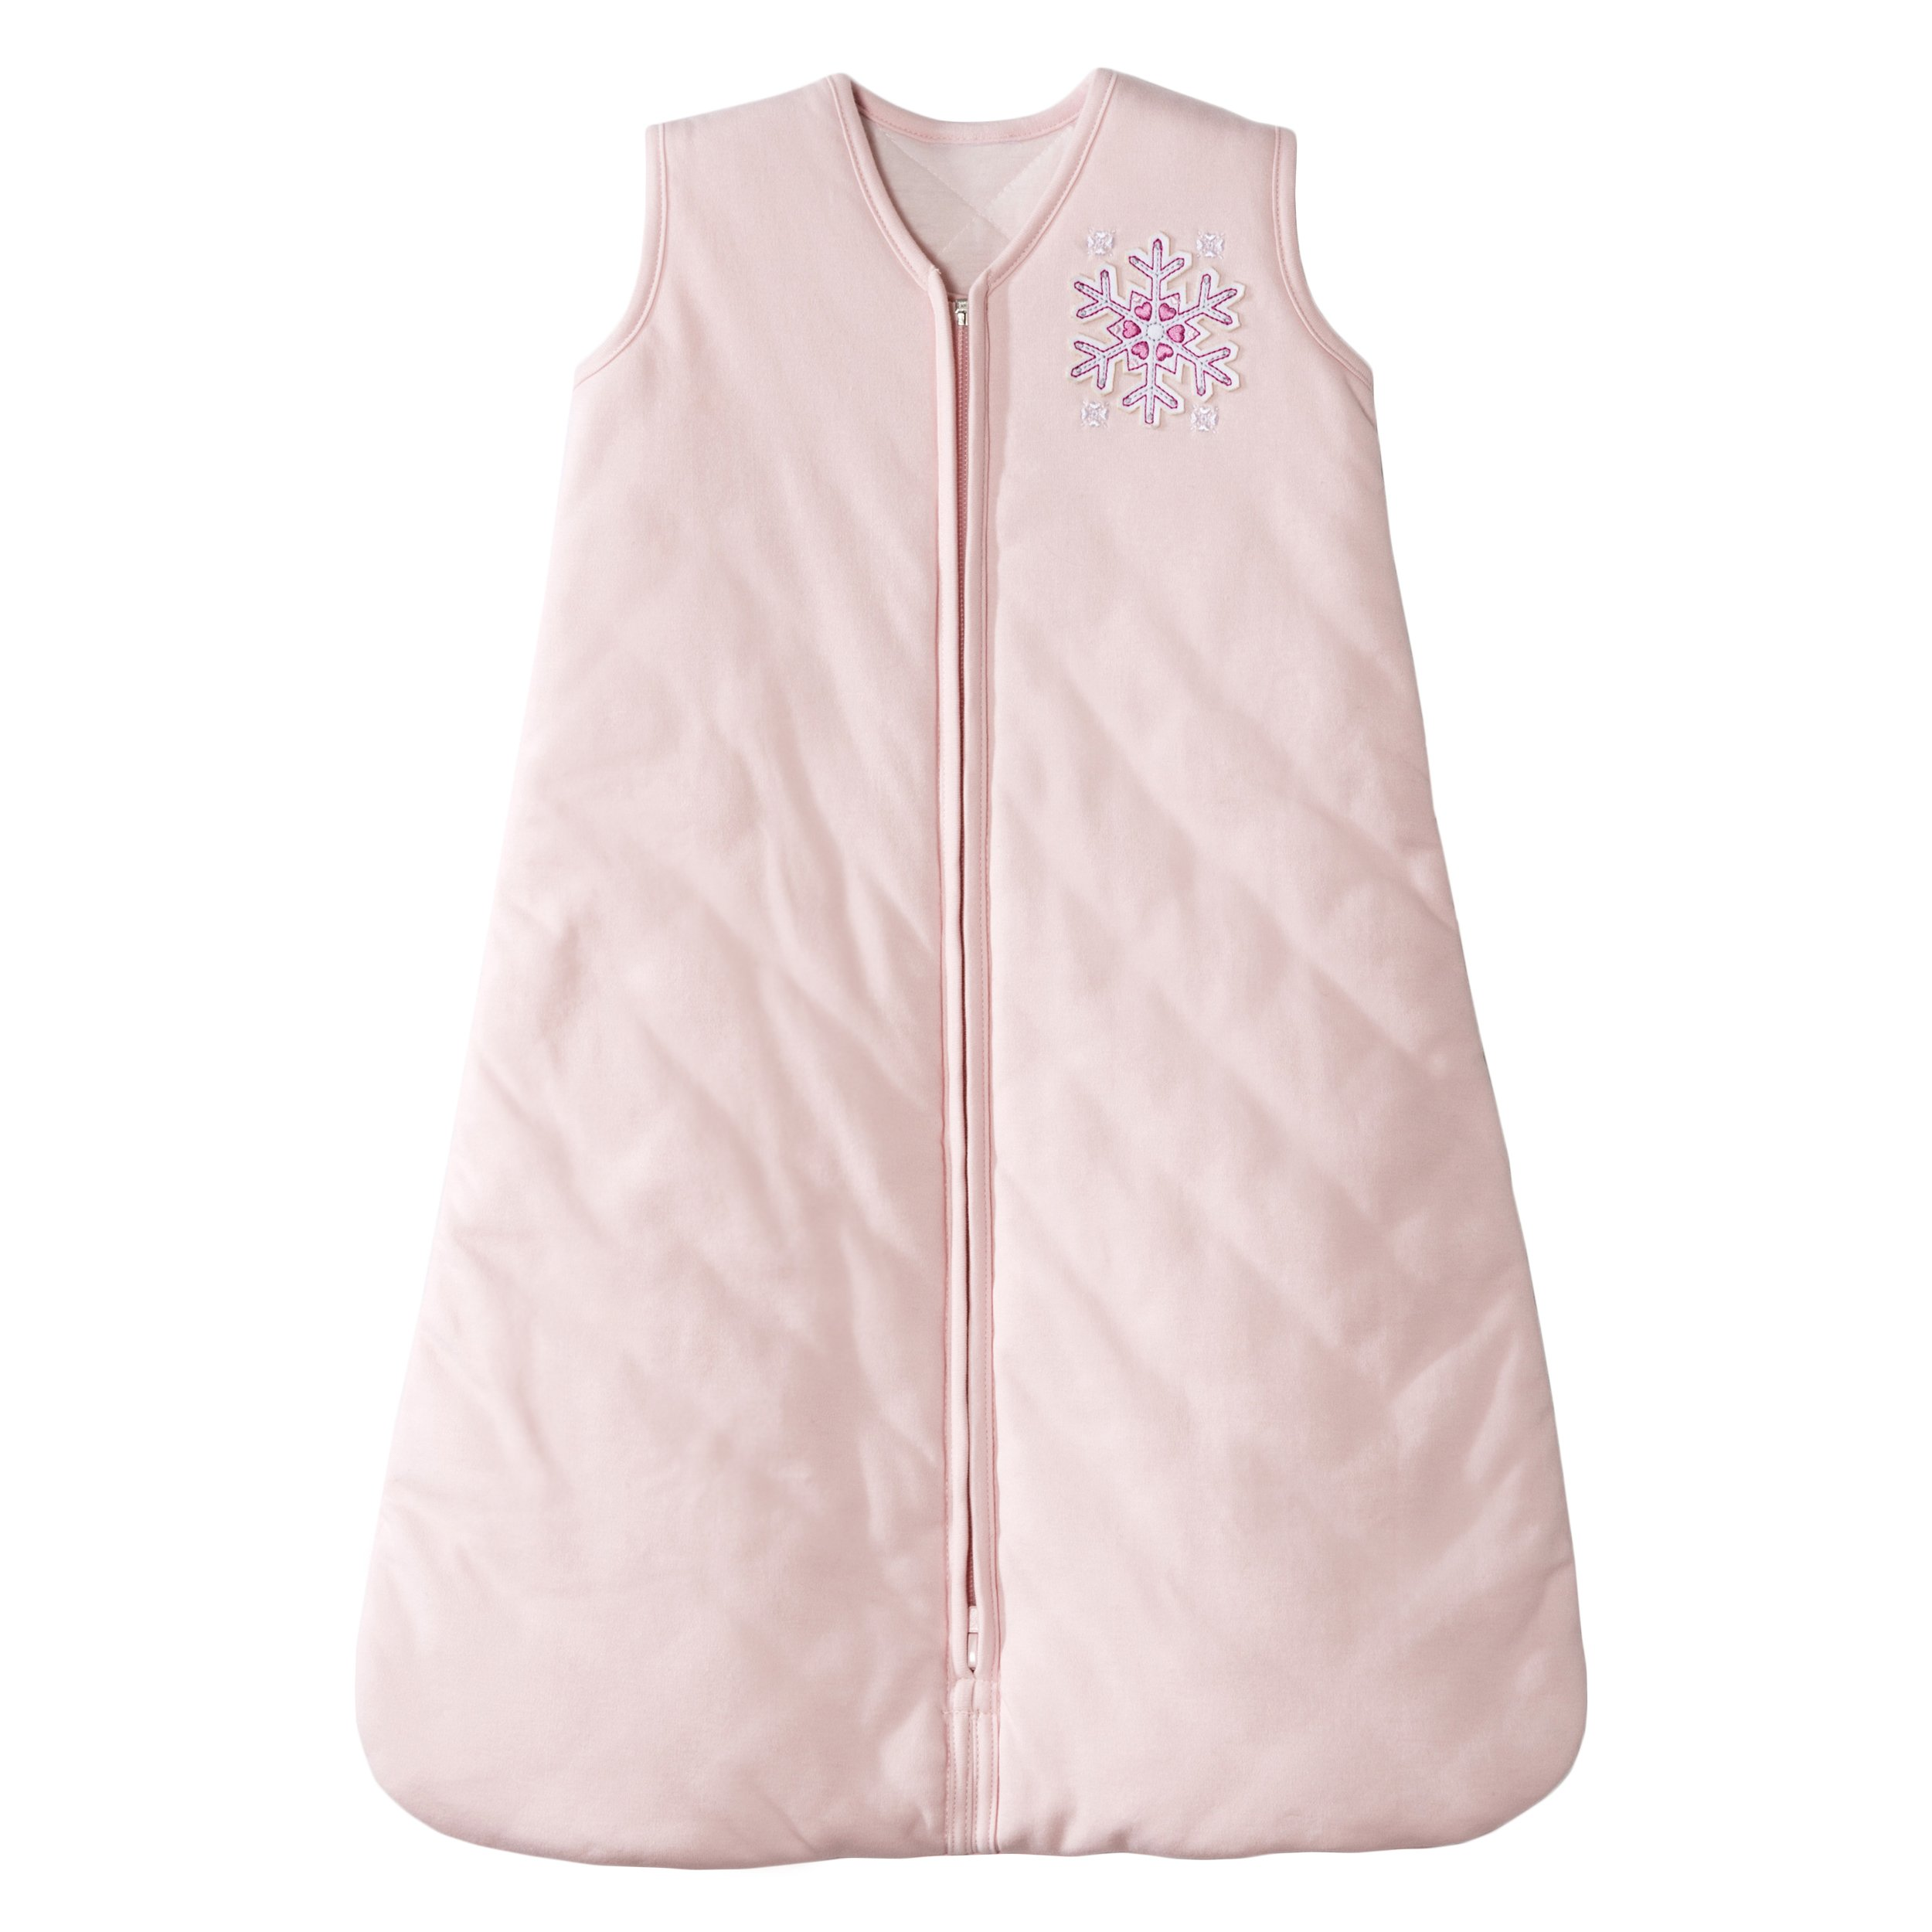 HALO Winter Weight SleepSack, Pink, Large